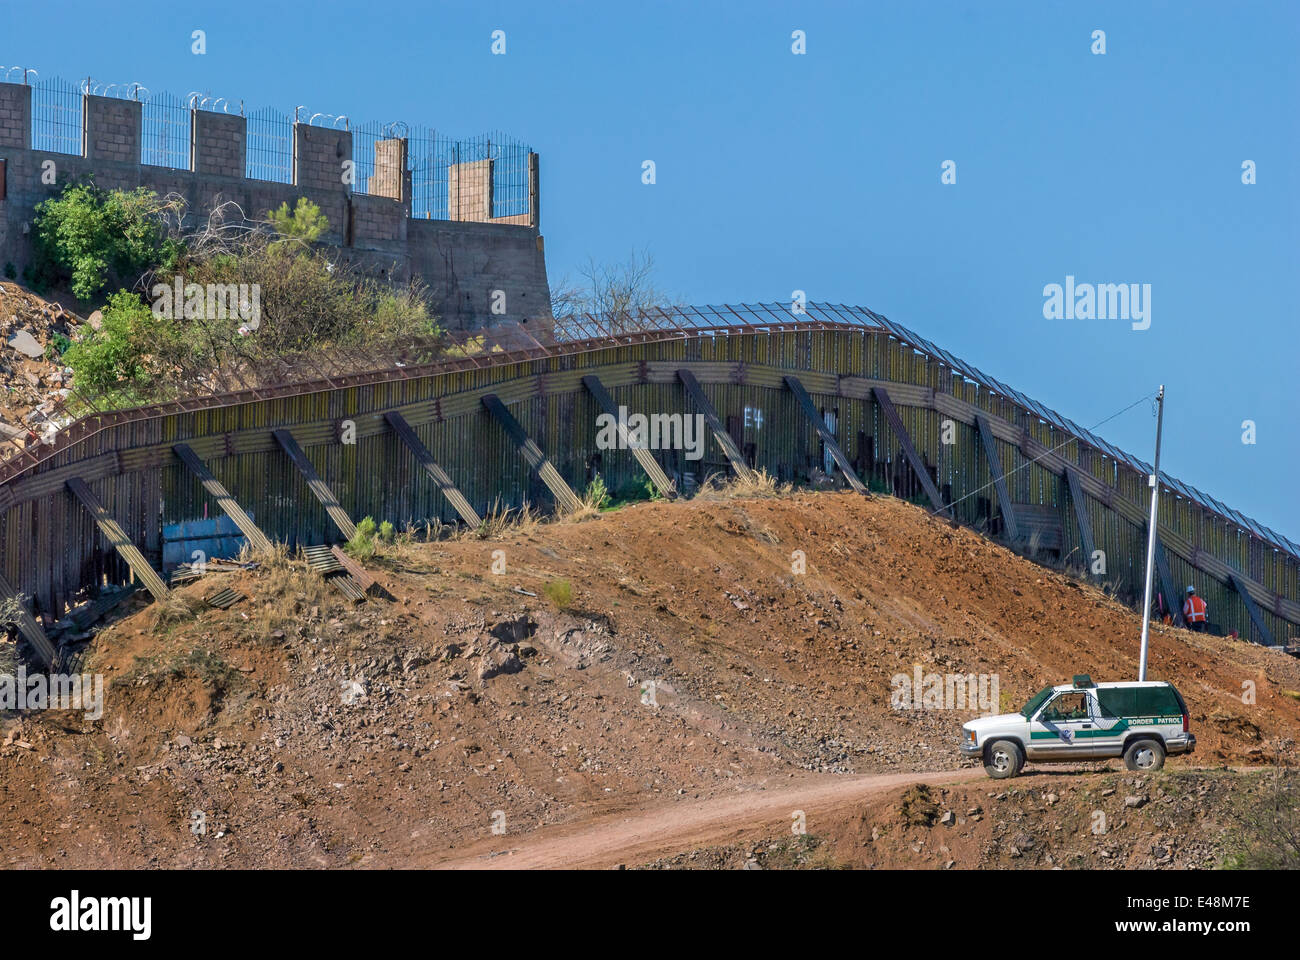 US border fence near downtown Nogales Arizona USA, looking south into Nogales Sonora Mexico - Stock Image